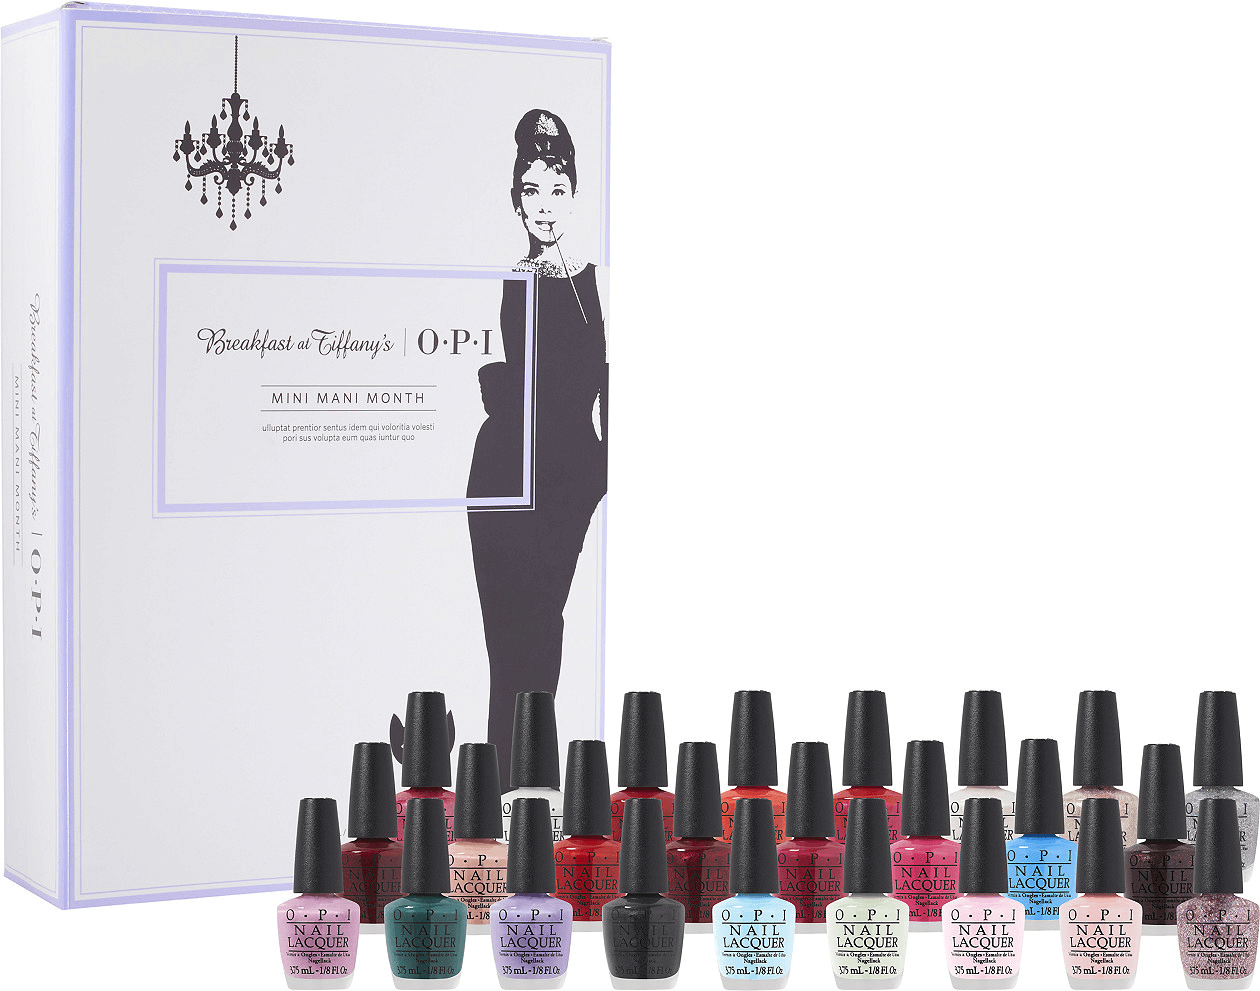 OPI's Breakfast at Tiffany's Mini Mani Month 2016 Advent Calendar Available Now!